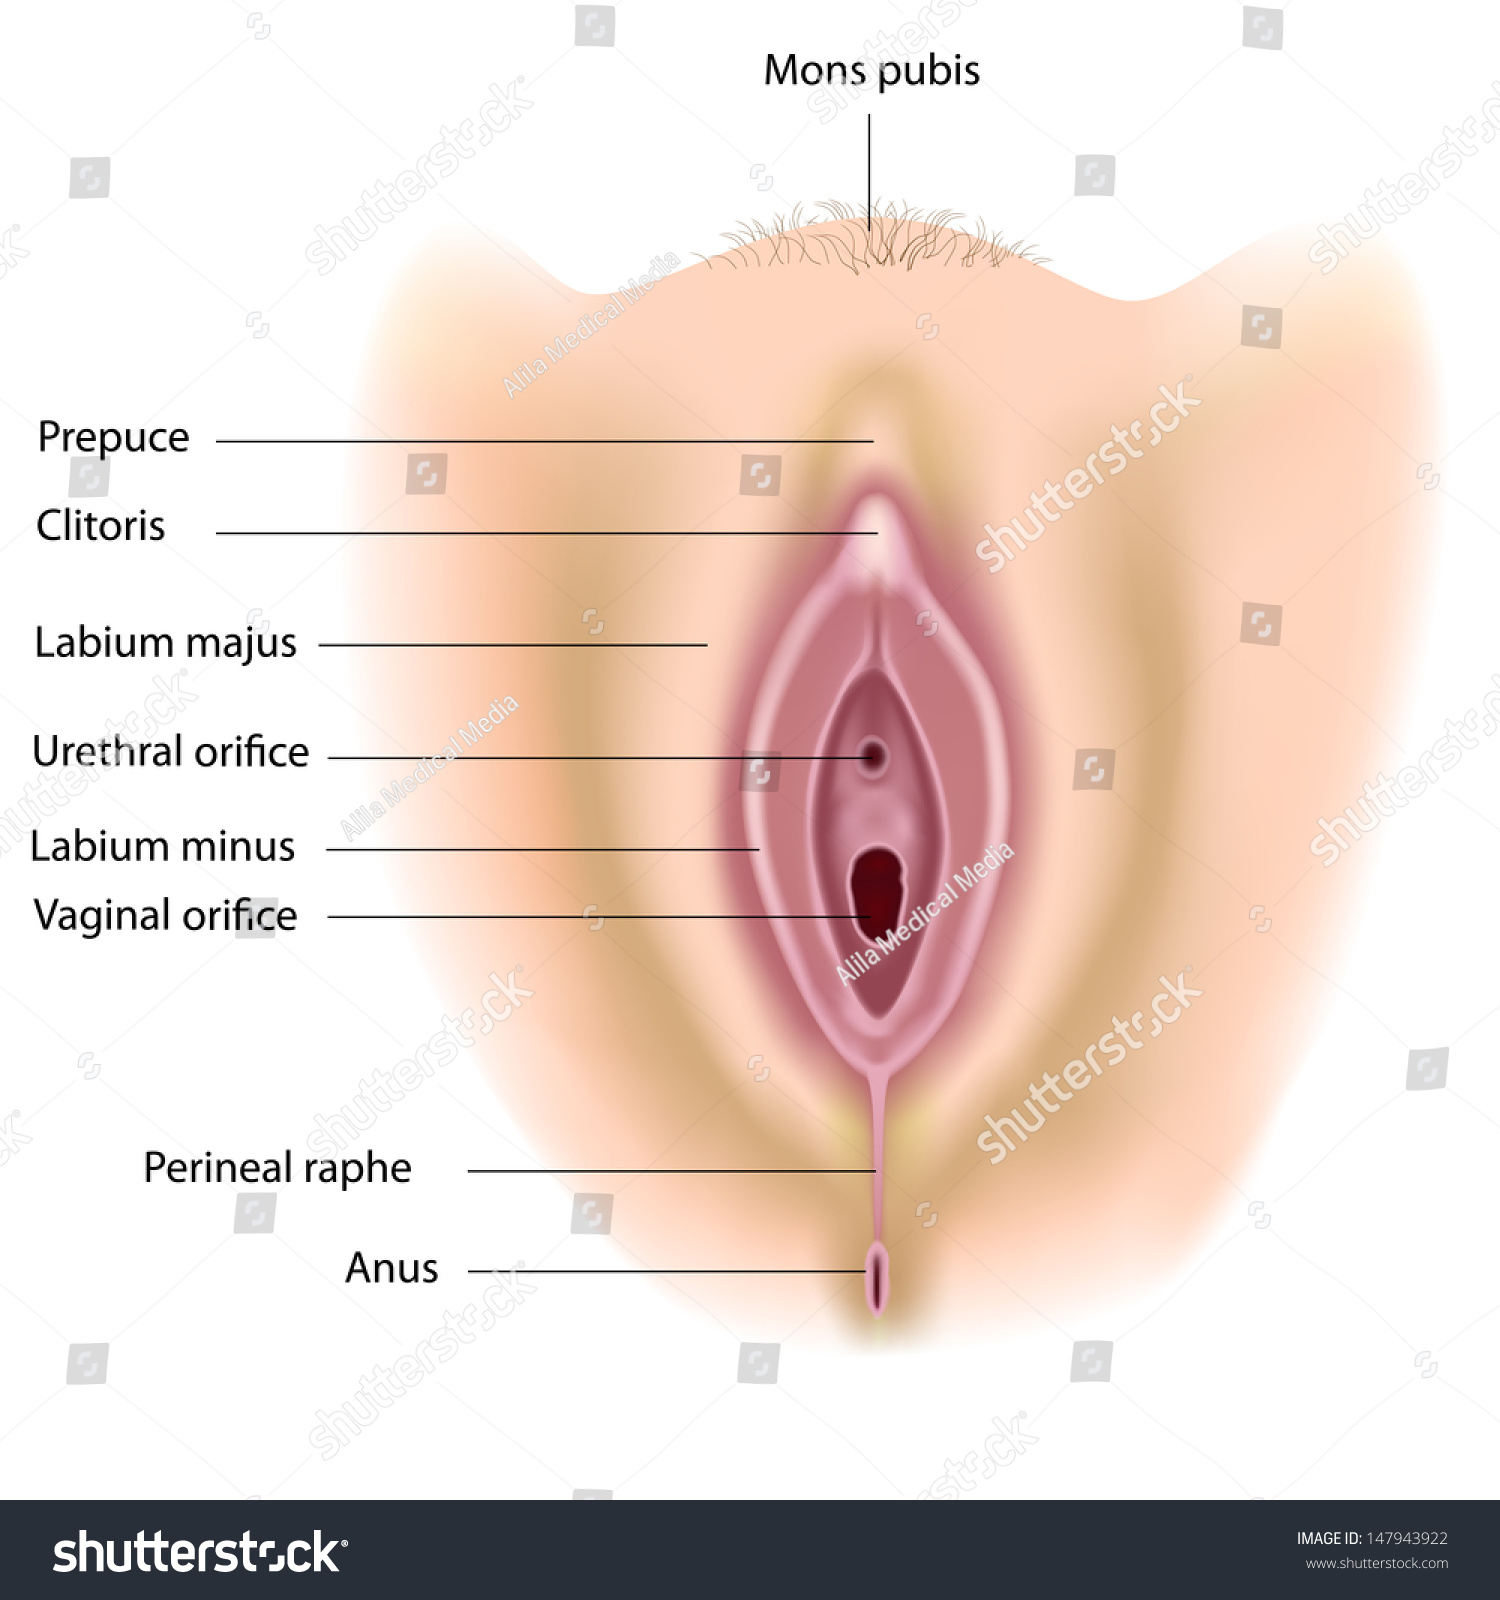 Female Perineum Anatomy Labeled Stock Illustration 147943922